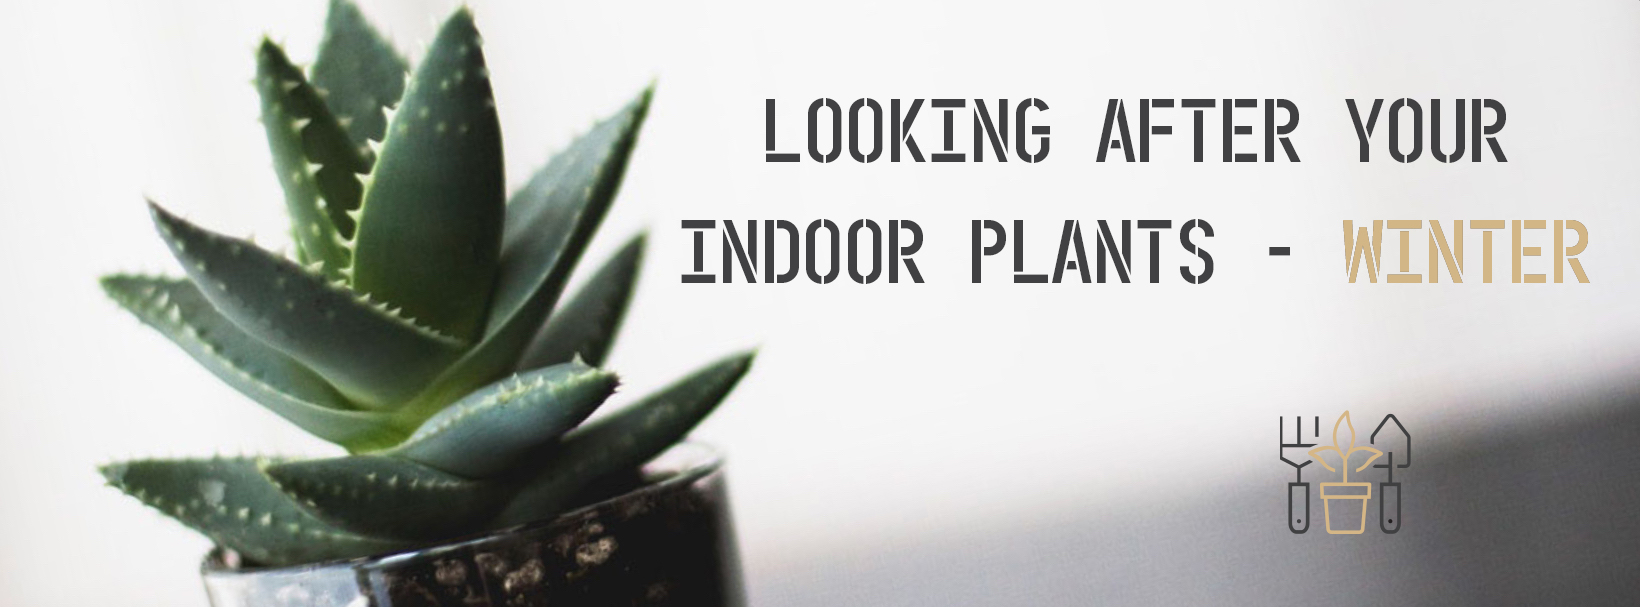 Indoor Plant Care Banner (PS1).jpg